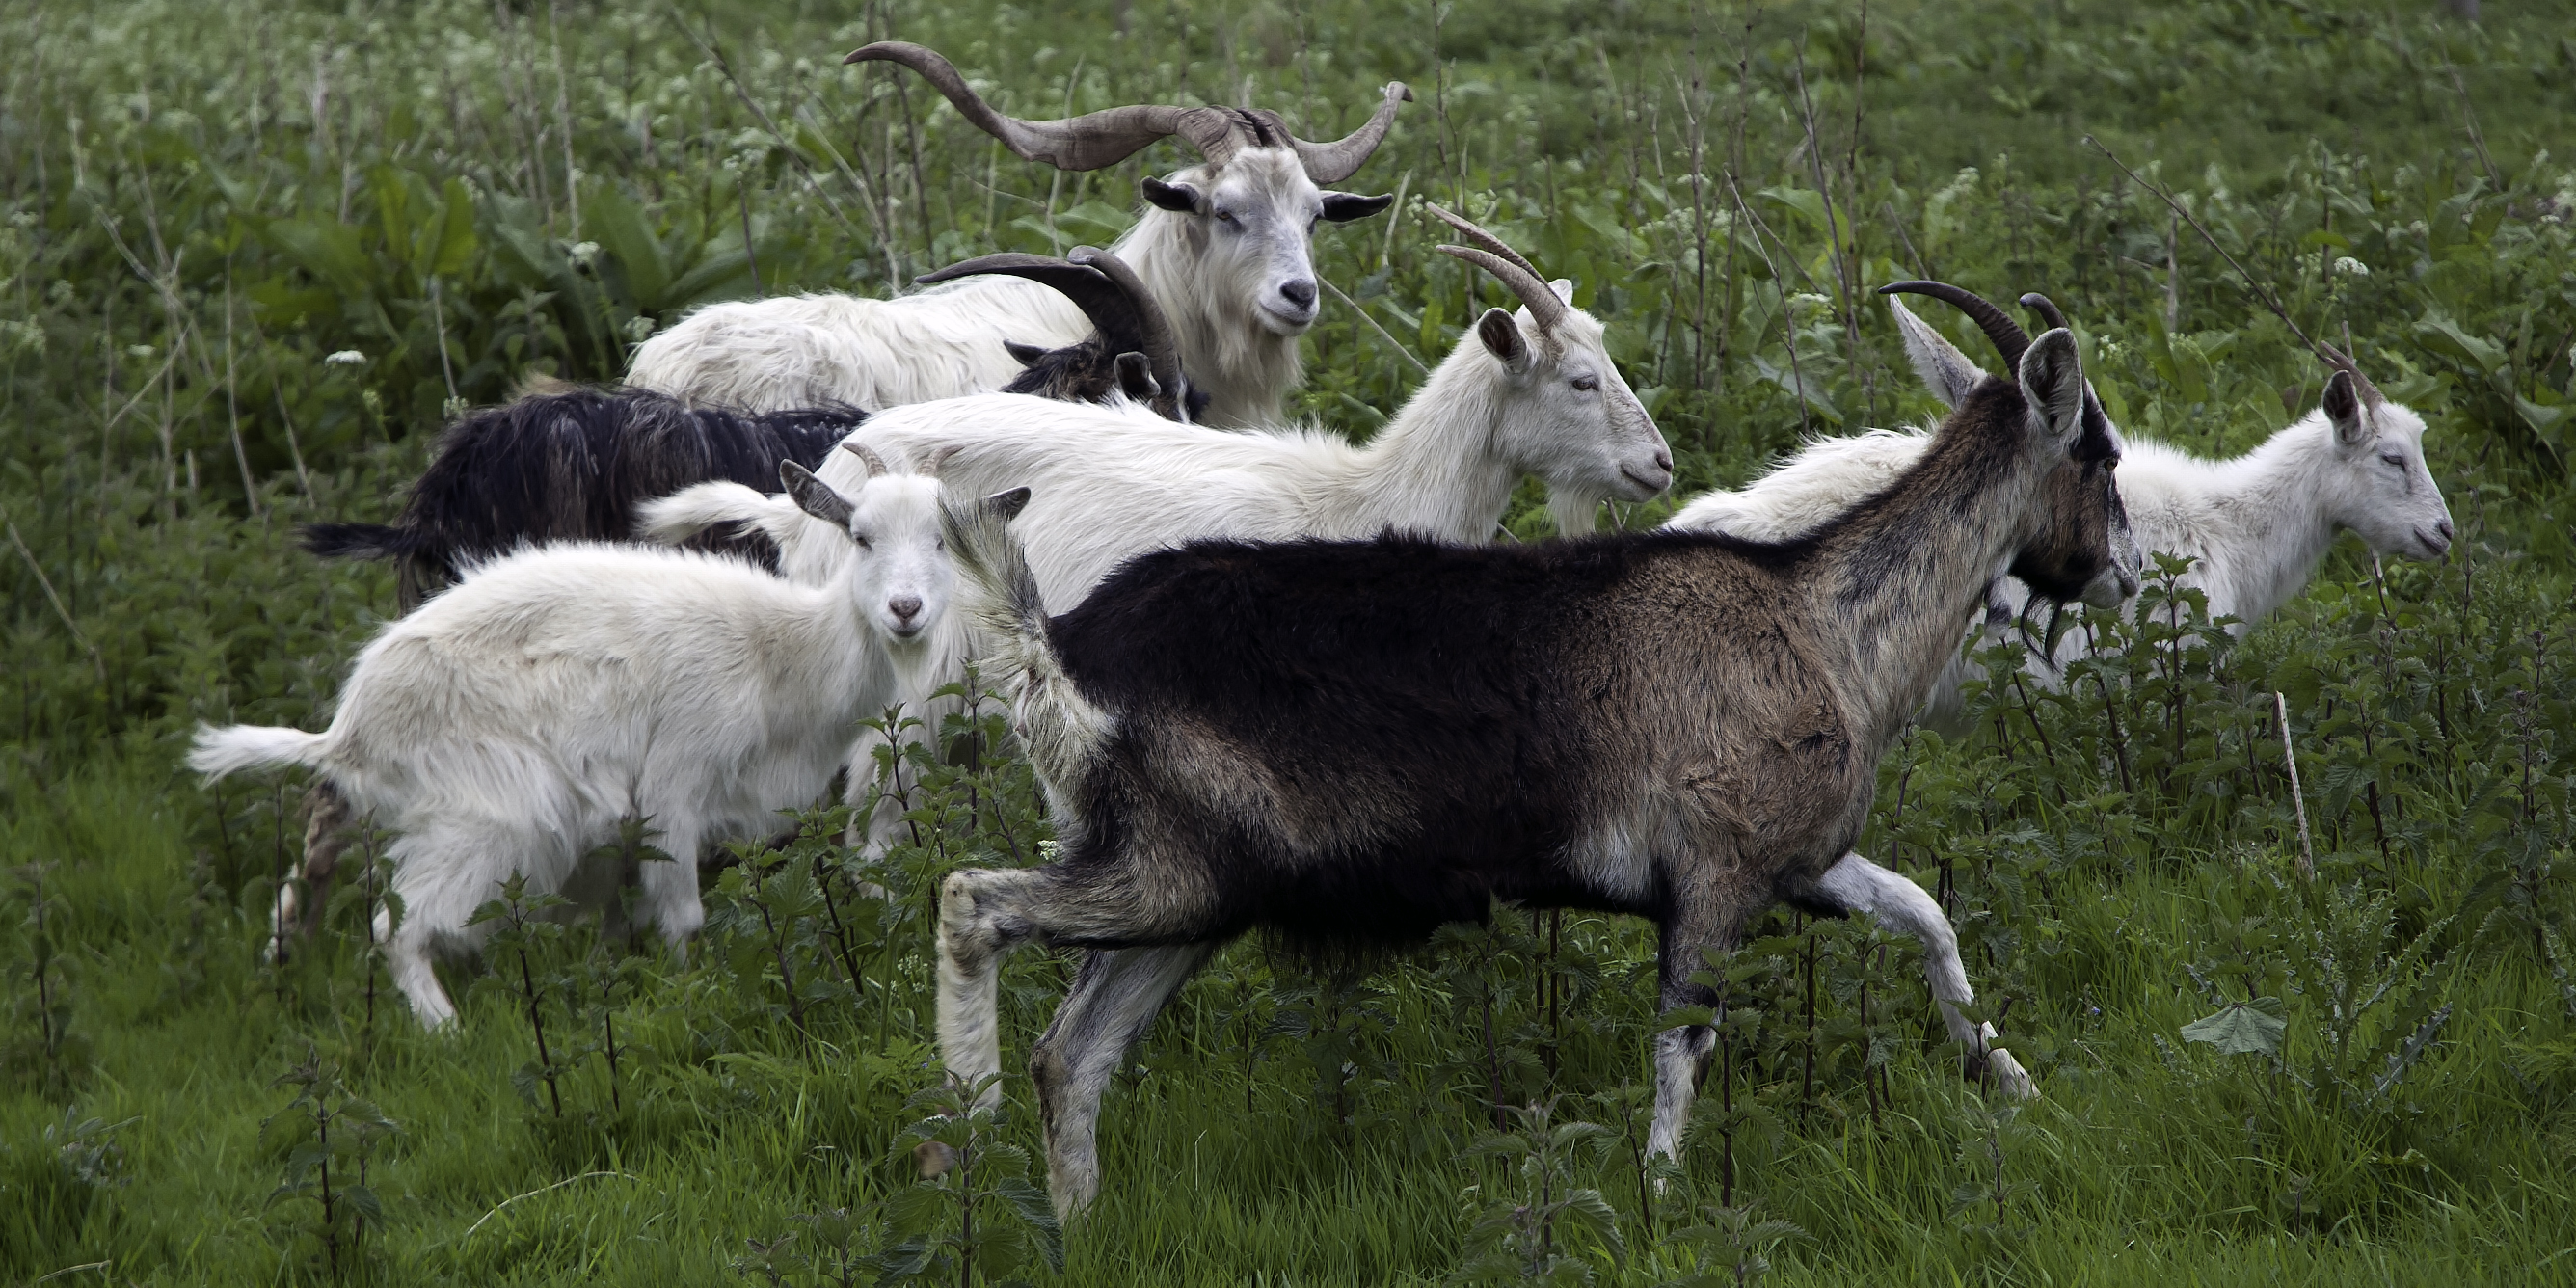 Goats in the Farm Lands